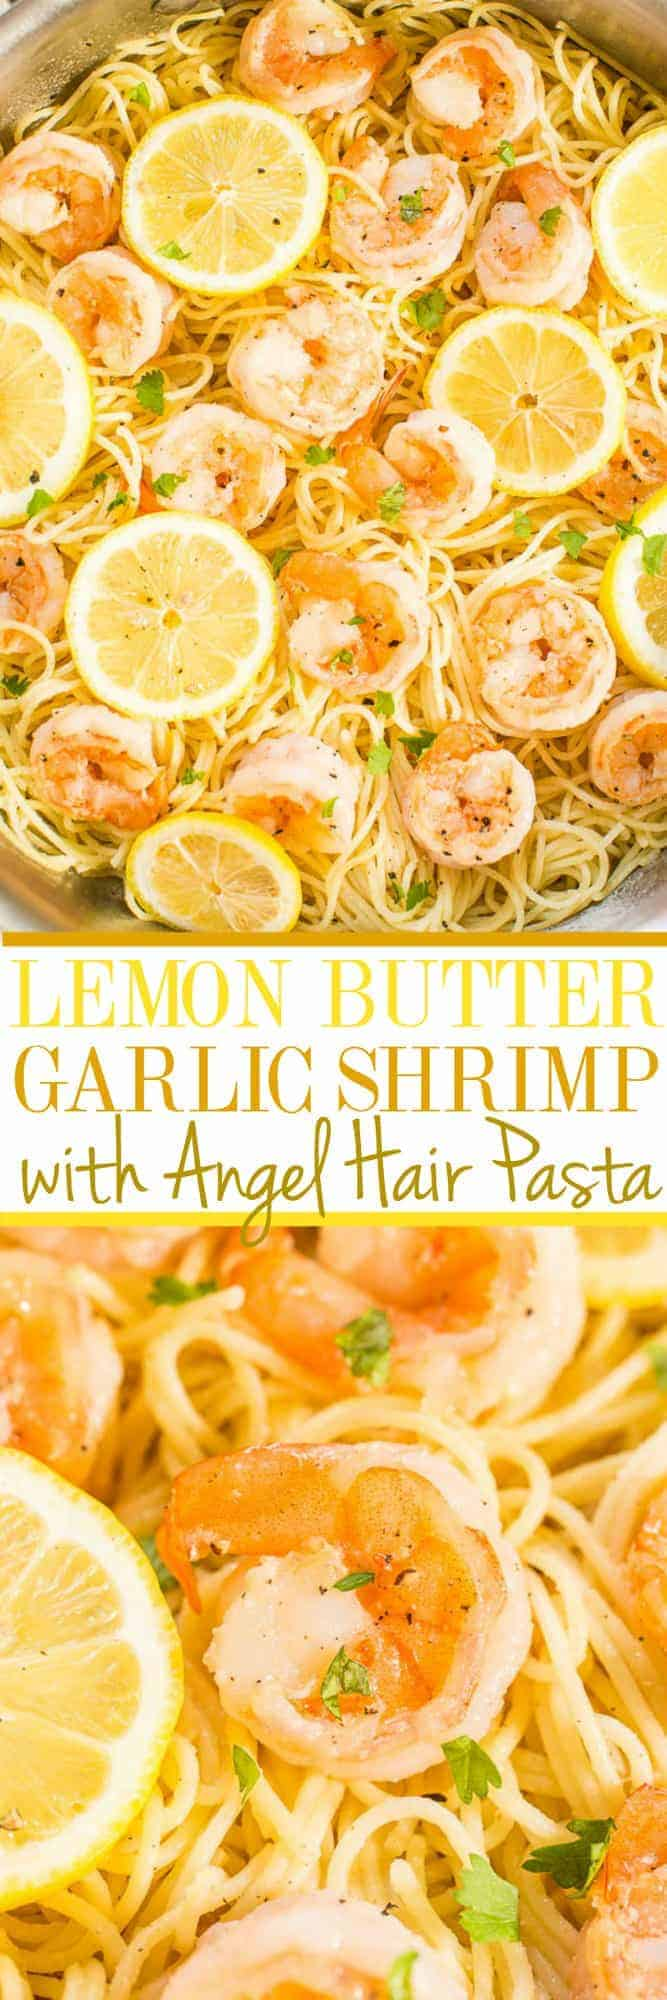 How to make garlic shrimp pasta in 15 minutes